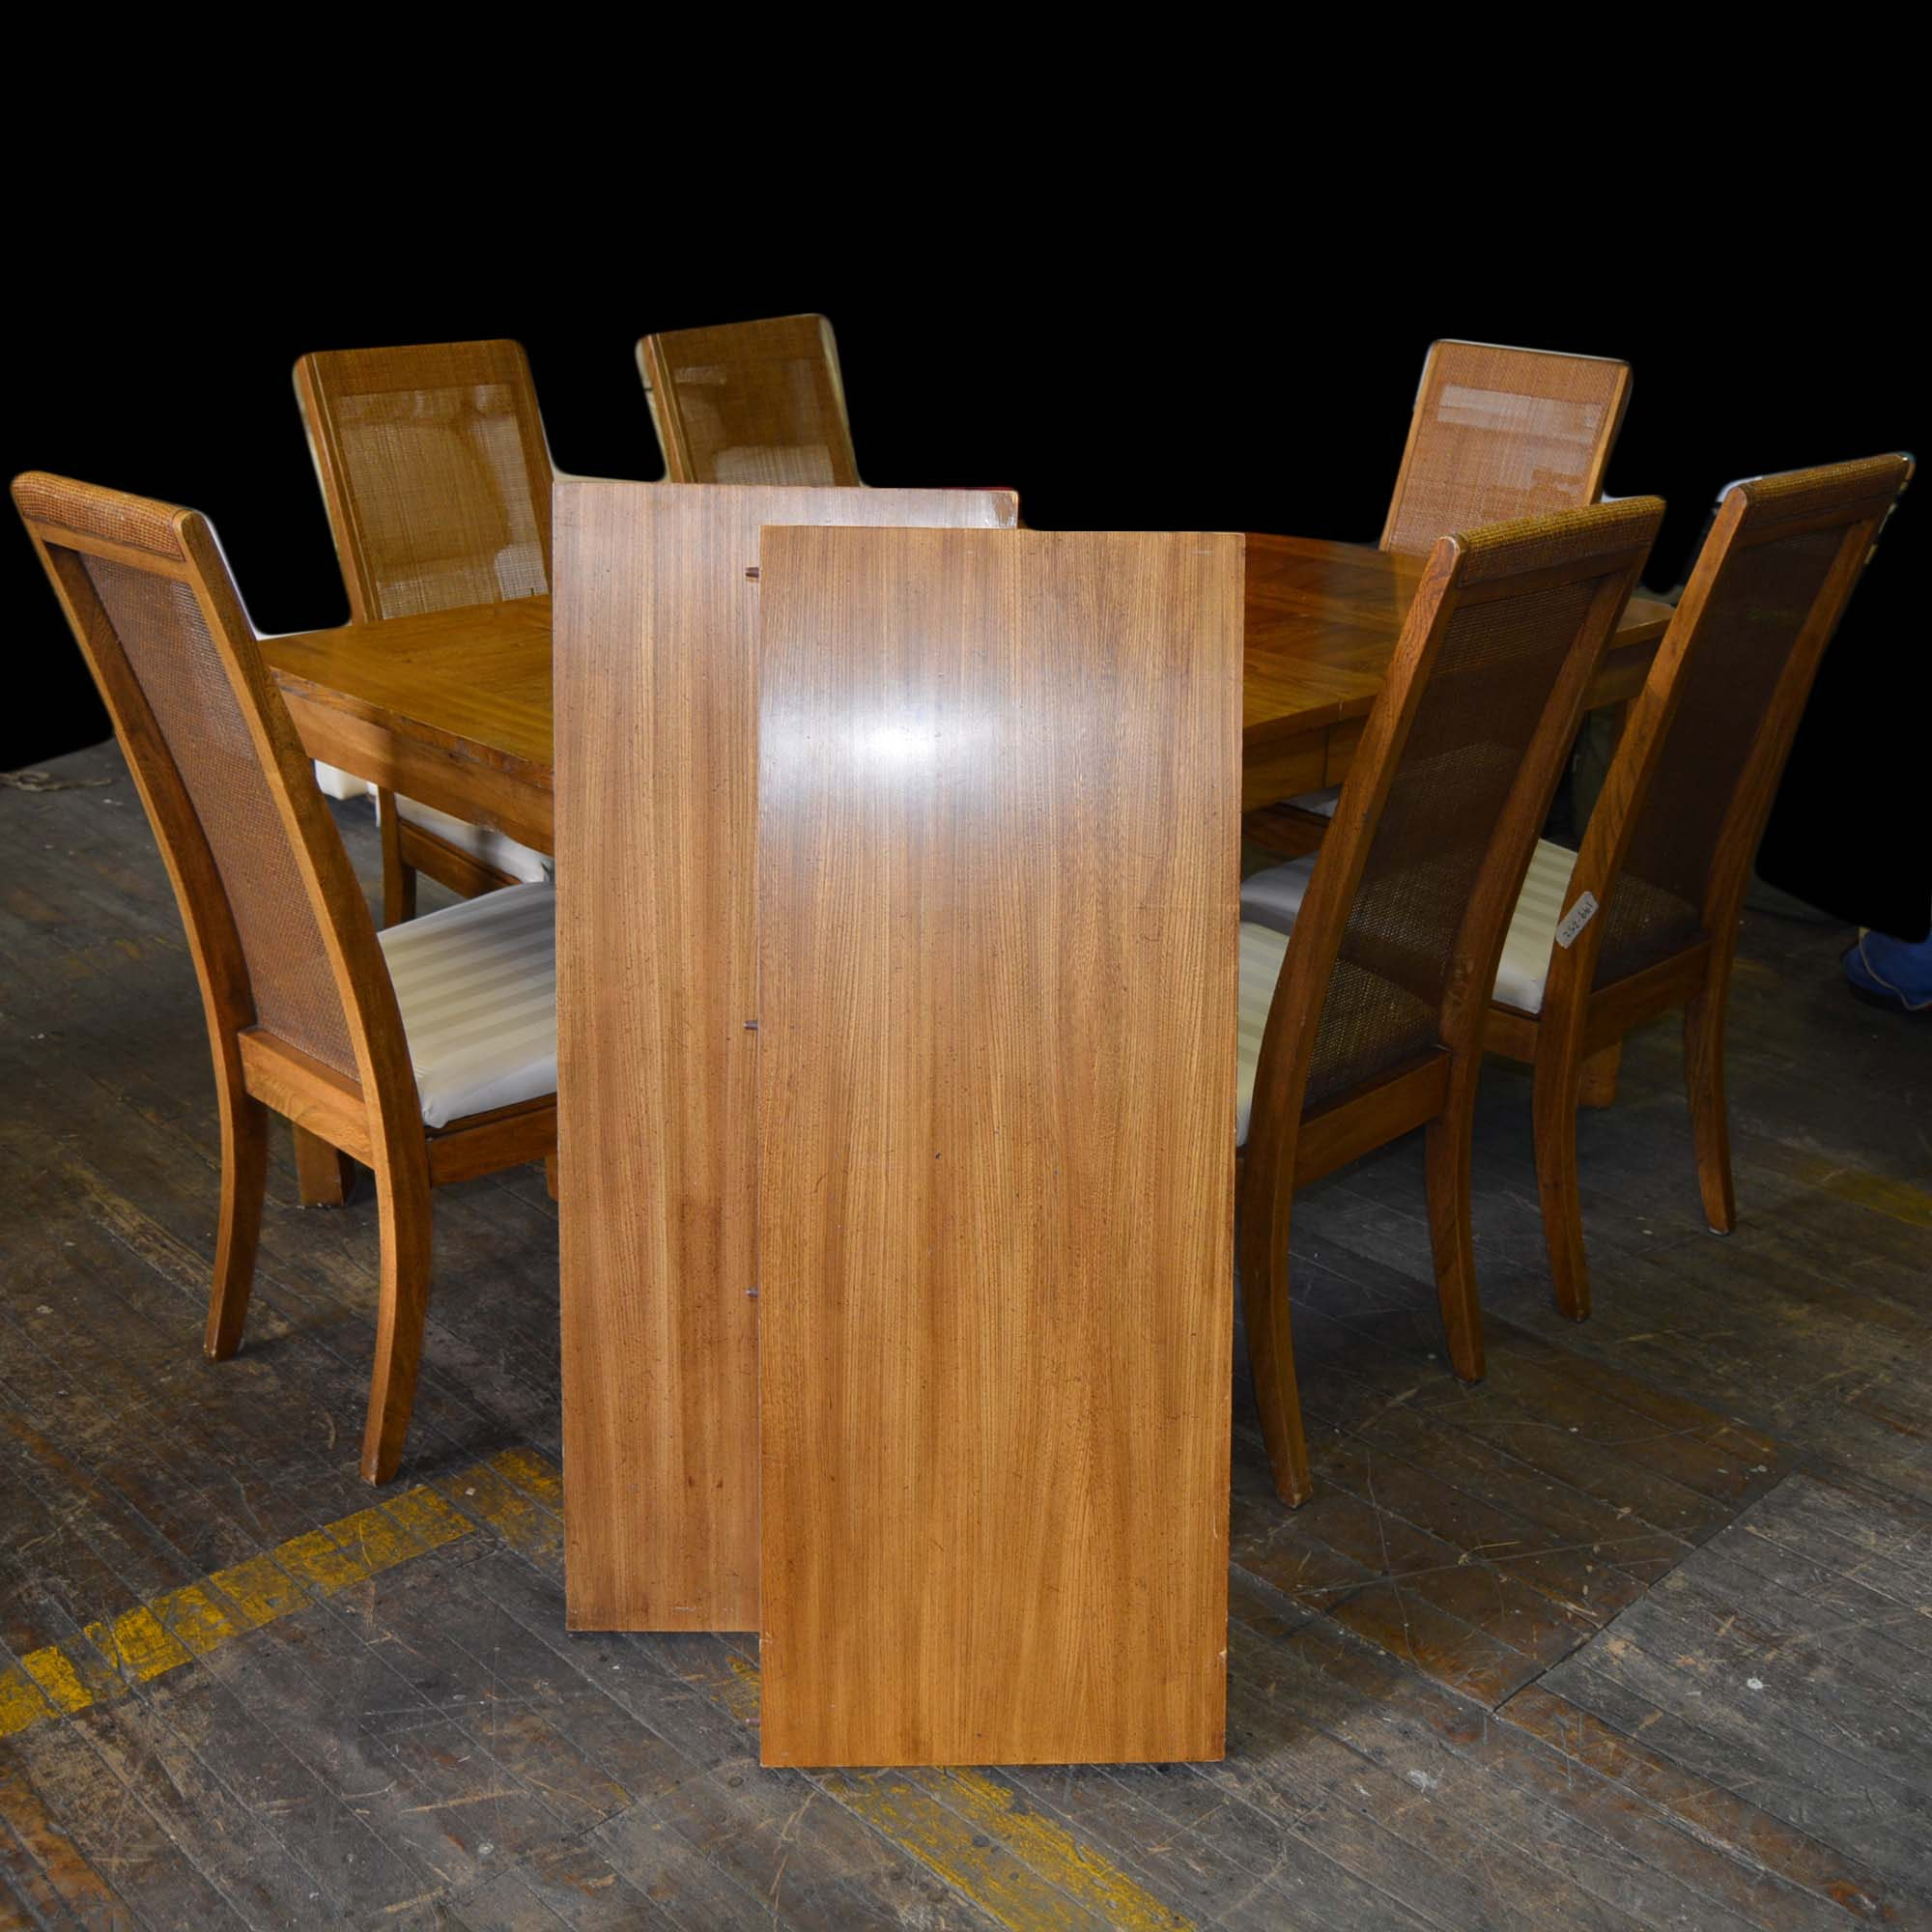 Oak Dining Table and Chairs from American Furniture Co.